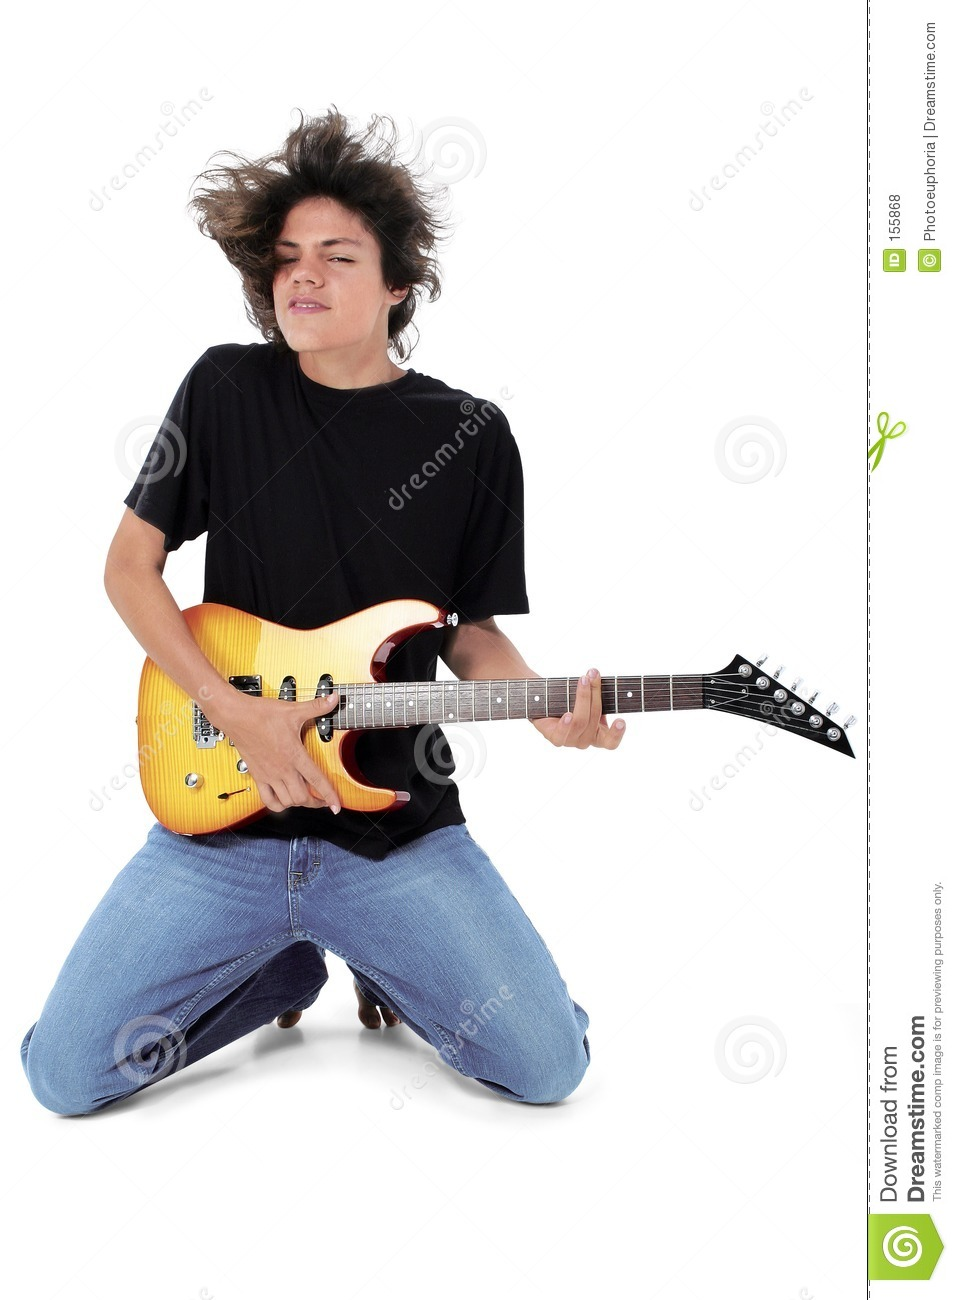 Barefoot Teen Playing Electric Guitar Over White